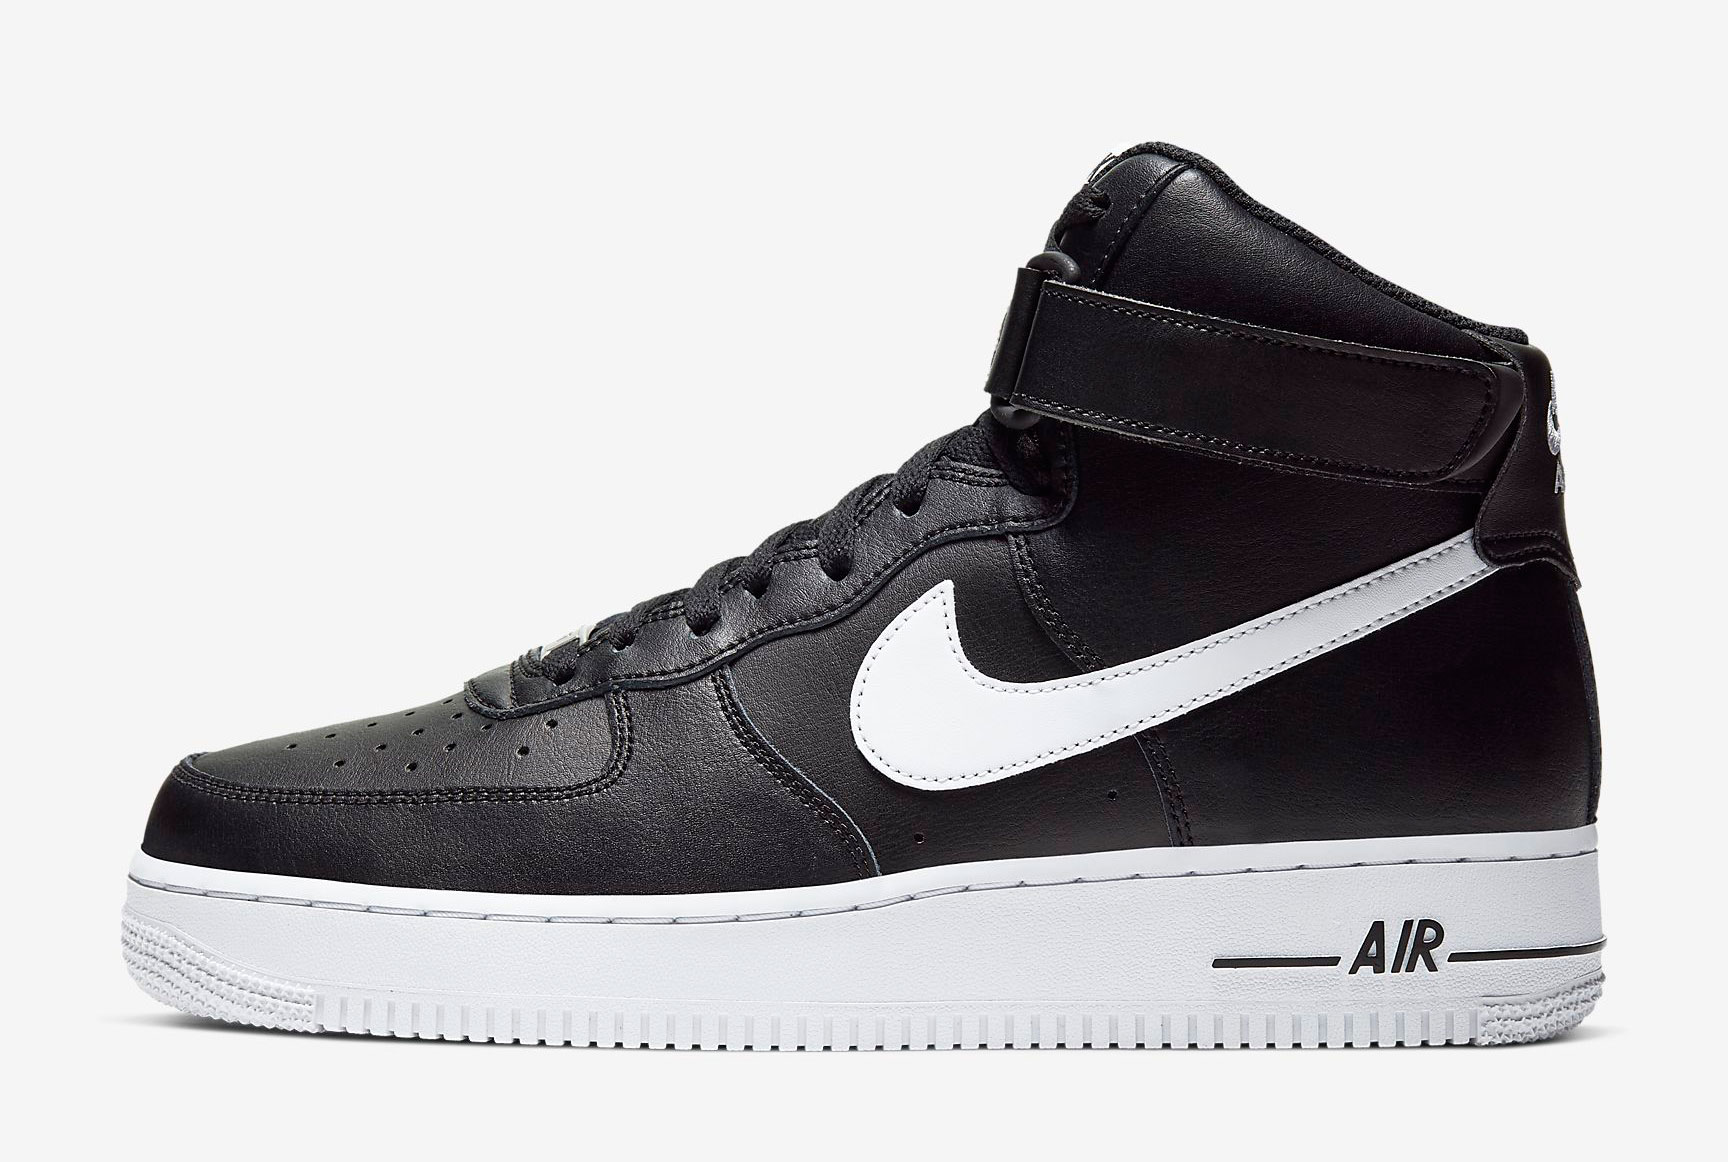 nike-air-force-1-high-2020-black-white-release-date